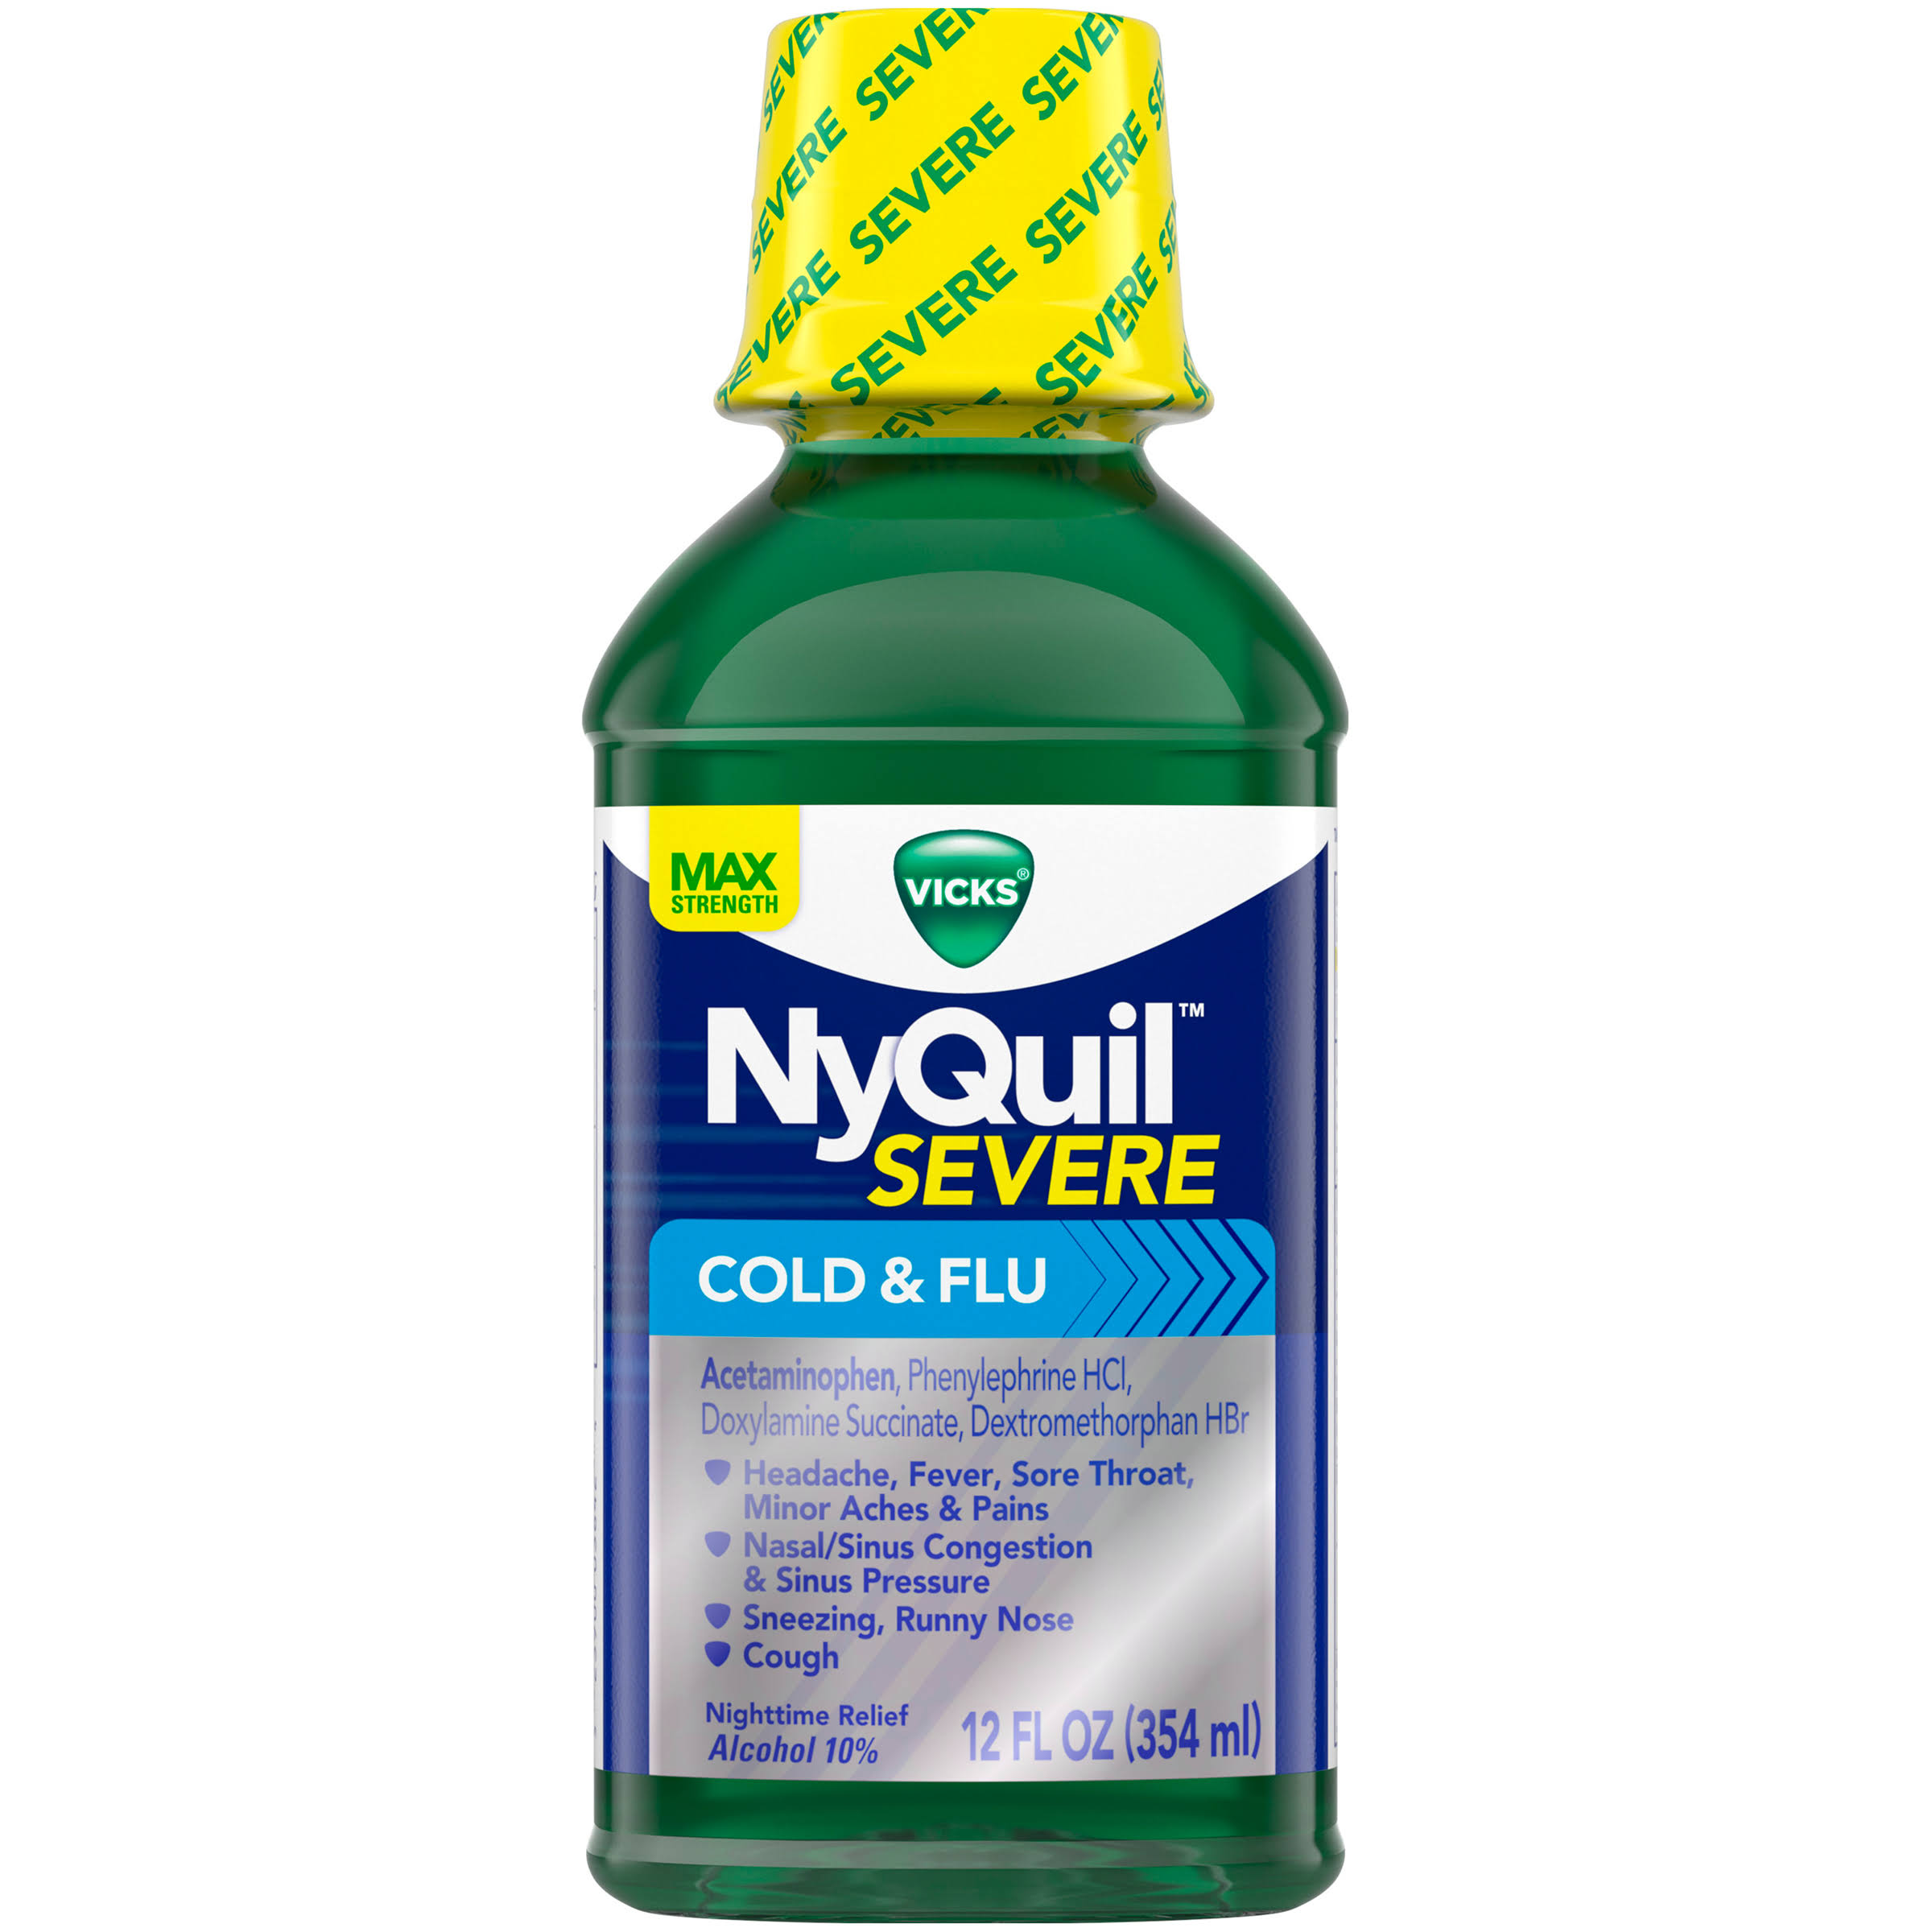 Vicks Nyquil Original Severe Cold & Flu Relief Liquid - 354ml